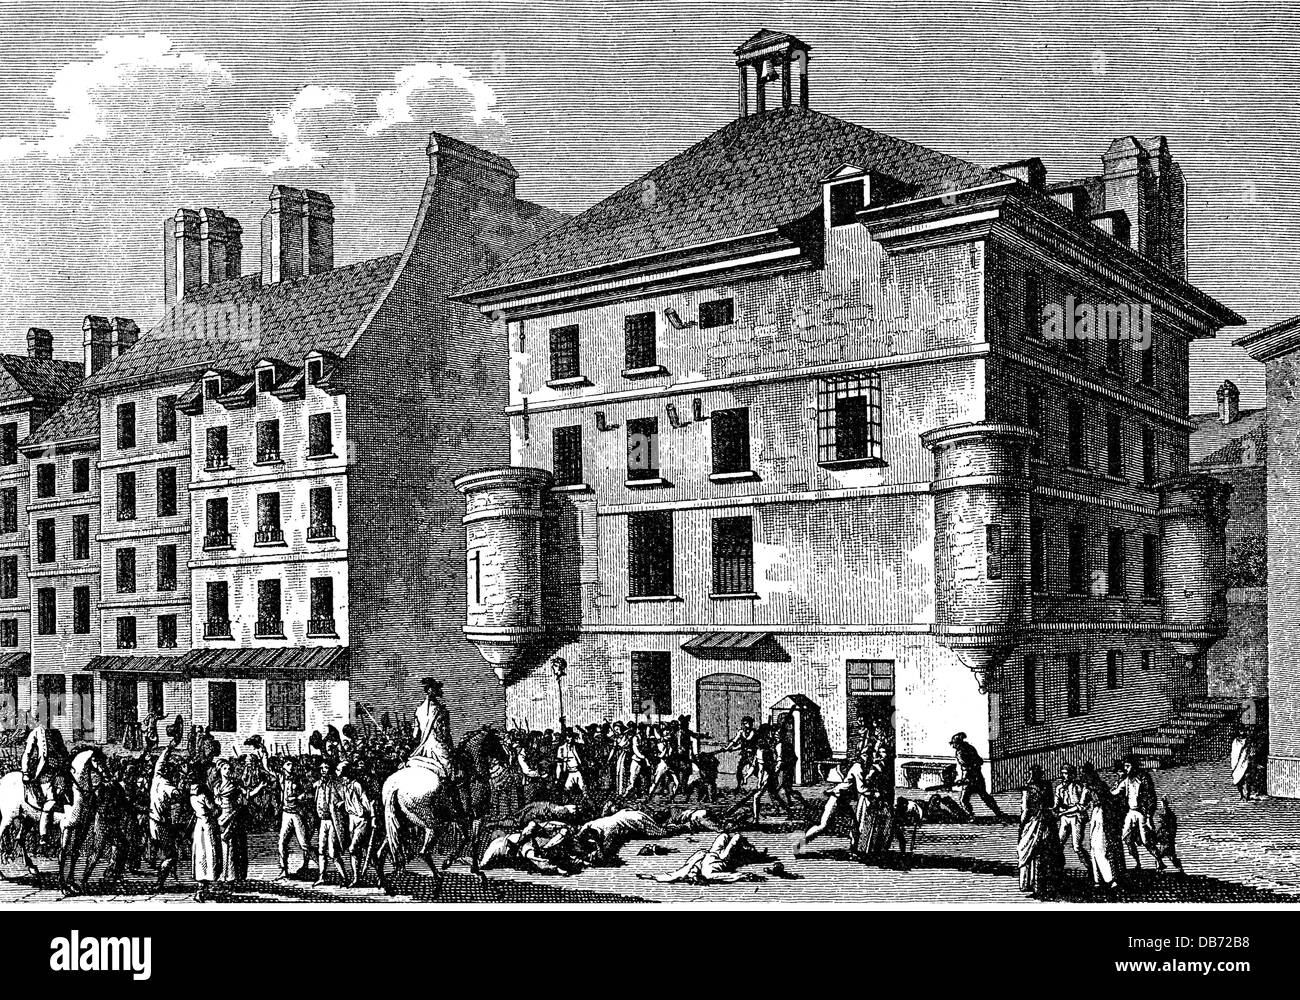 events, French Revolution 1789 - 1799, September Massacres 2.- 6.9.1792, contemporary copper engraving by Swebach, - Stock Image